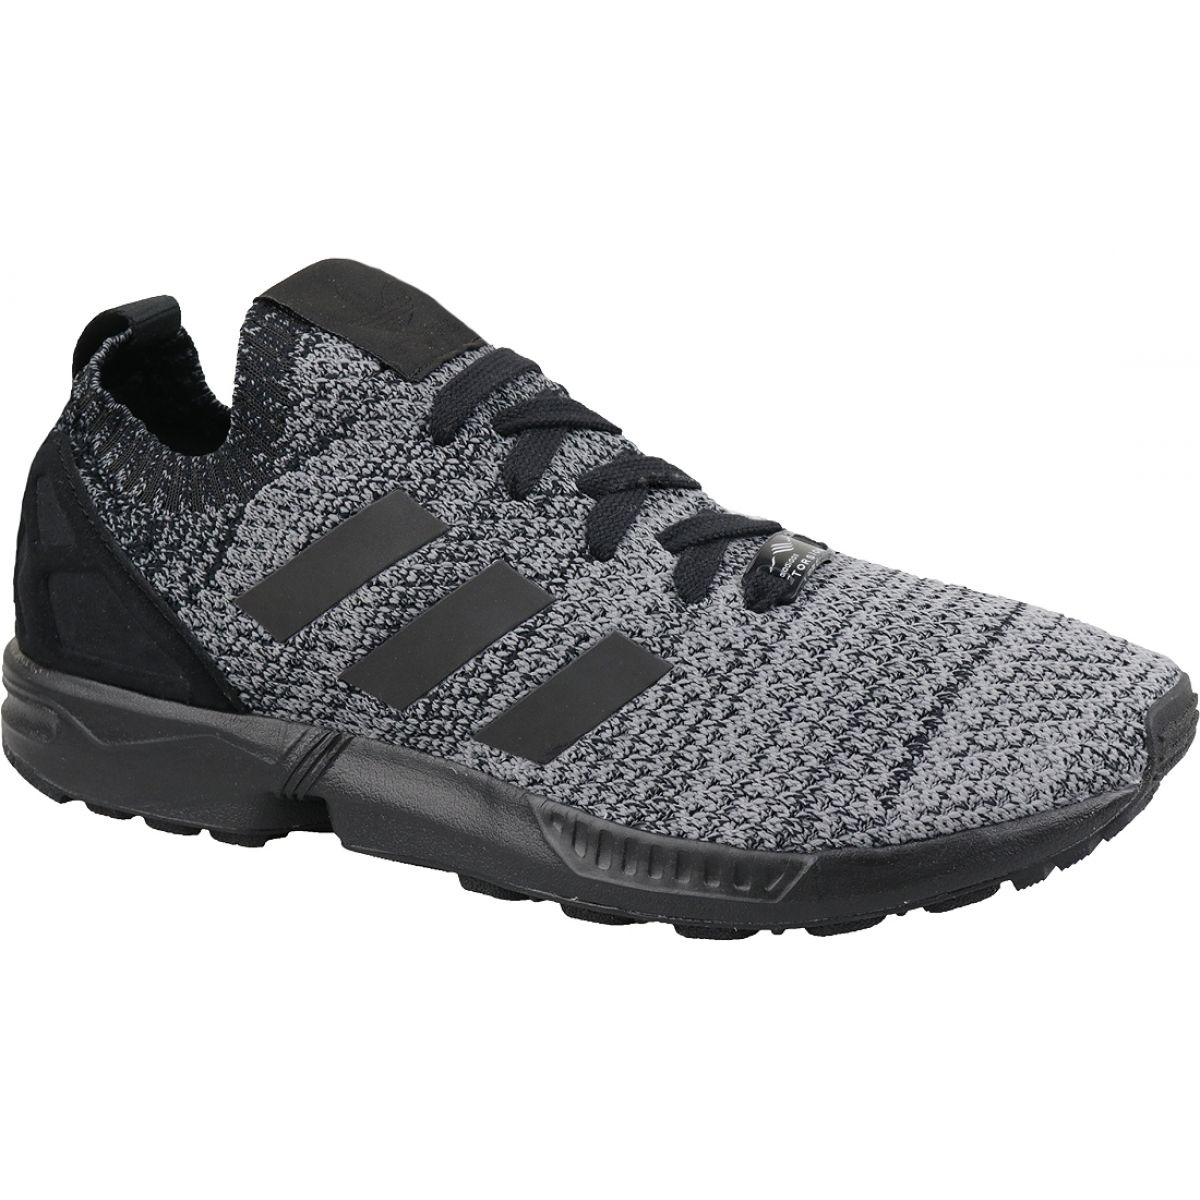 brand new ecc9b 7f063 Black Adidas Originals Zx Flux Primeknit M BZ0562 shoes